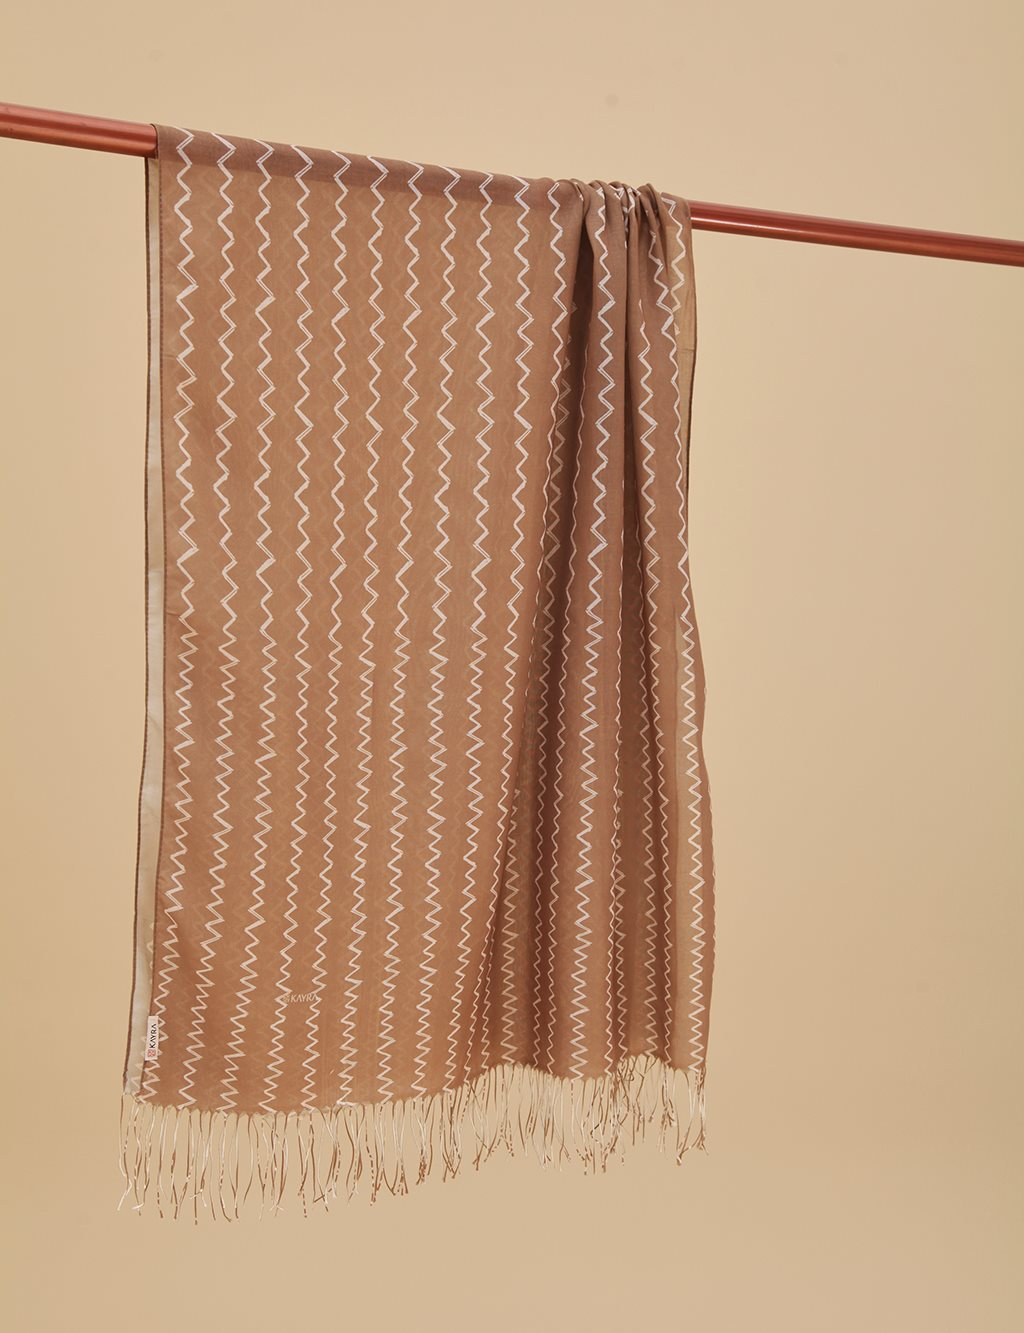 Zigzag Patterned Cotton Shawl A9 SAL15 Beige